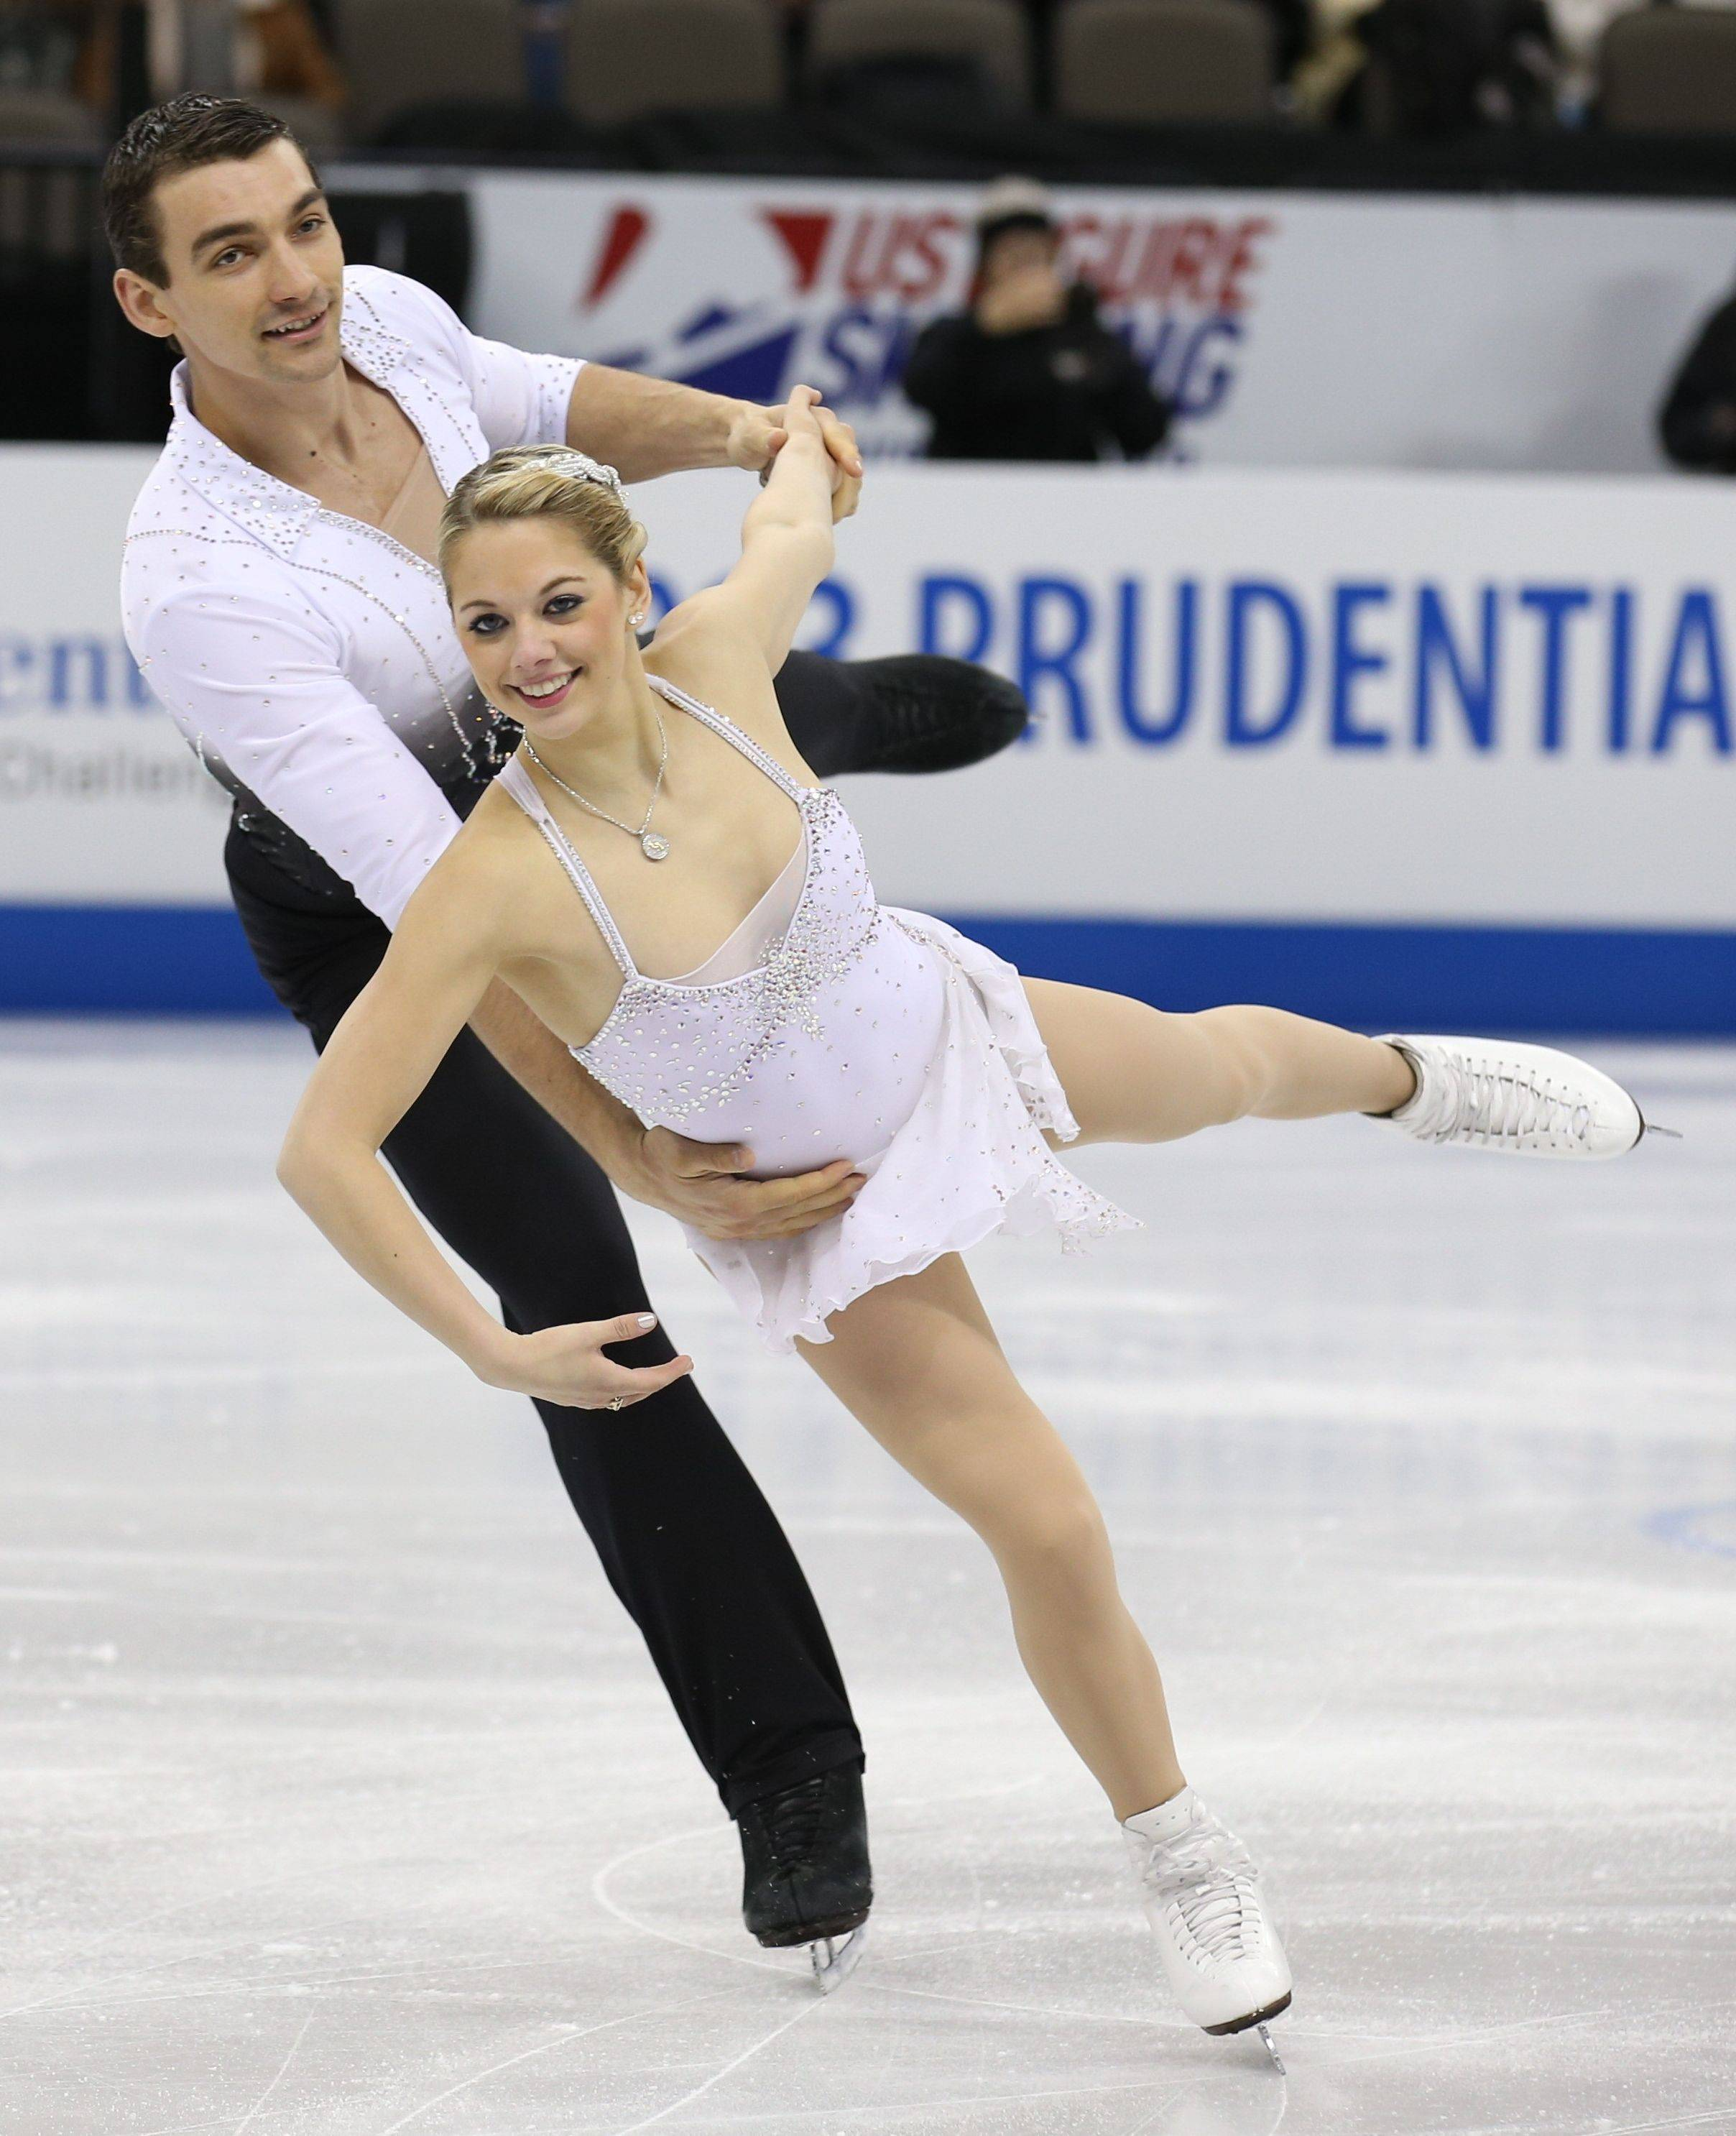 Addison native Alexa Scimeca and her pairs figure skating partner, Chris Knierim, shown here at the 2013 Prudential U.S. Figure Skating Championships, hope to earn a spot on the U.S. Olympic team this weekend.